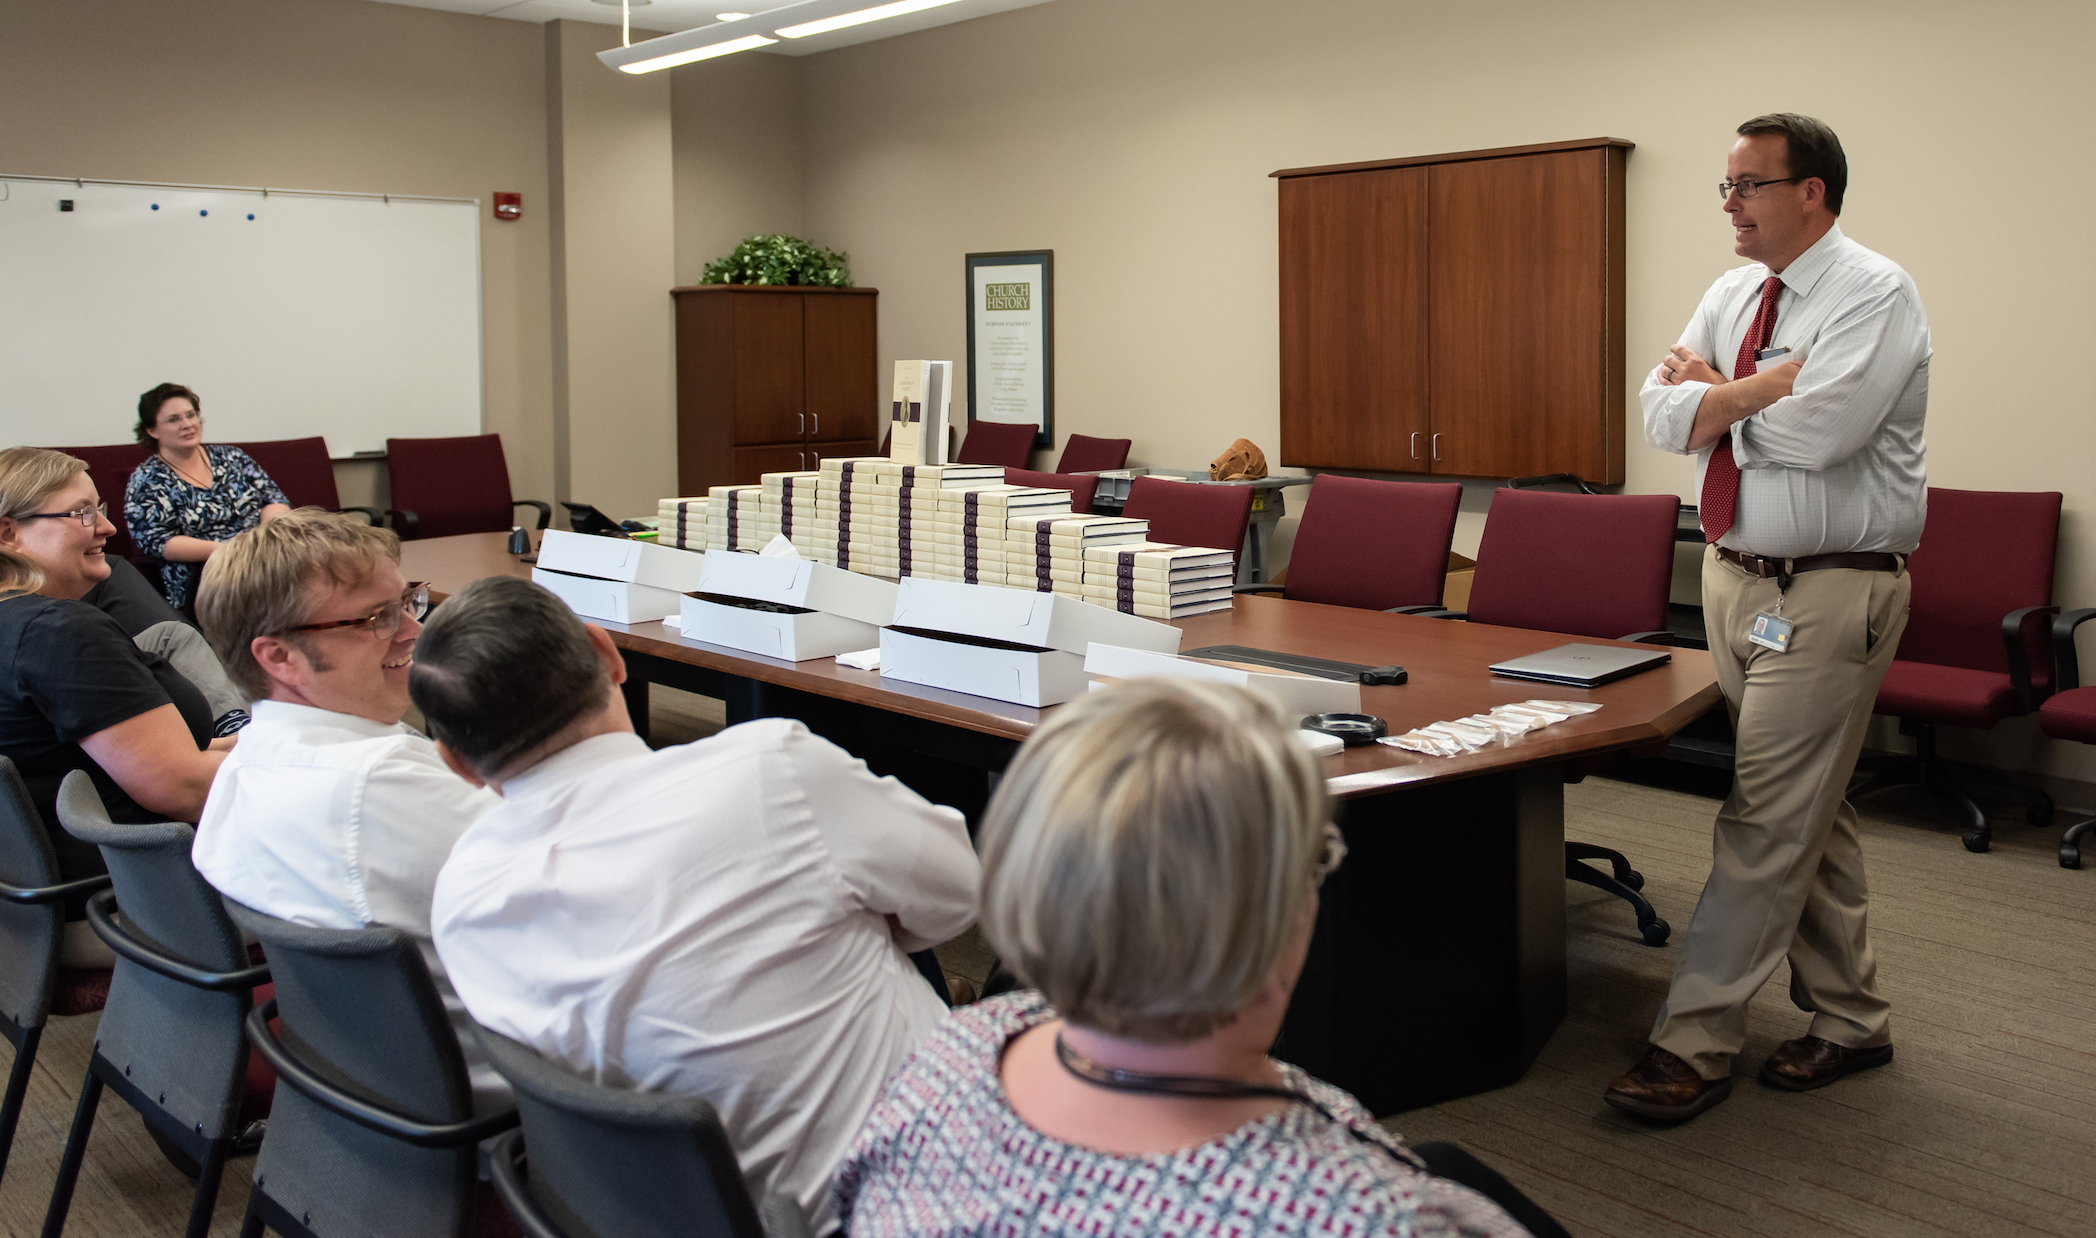 Robin S. Jensen, an associate managing historian for the Joseph Smith Papers and volume editor, speaks to staff members at an event celebrating the release of a new volume.